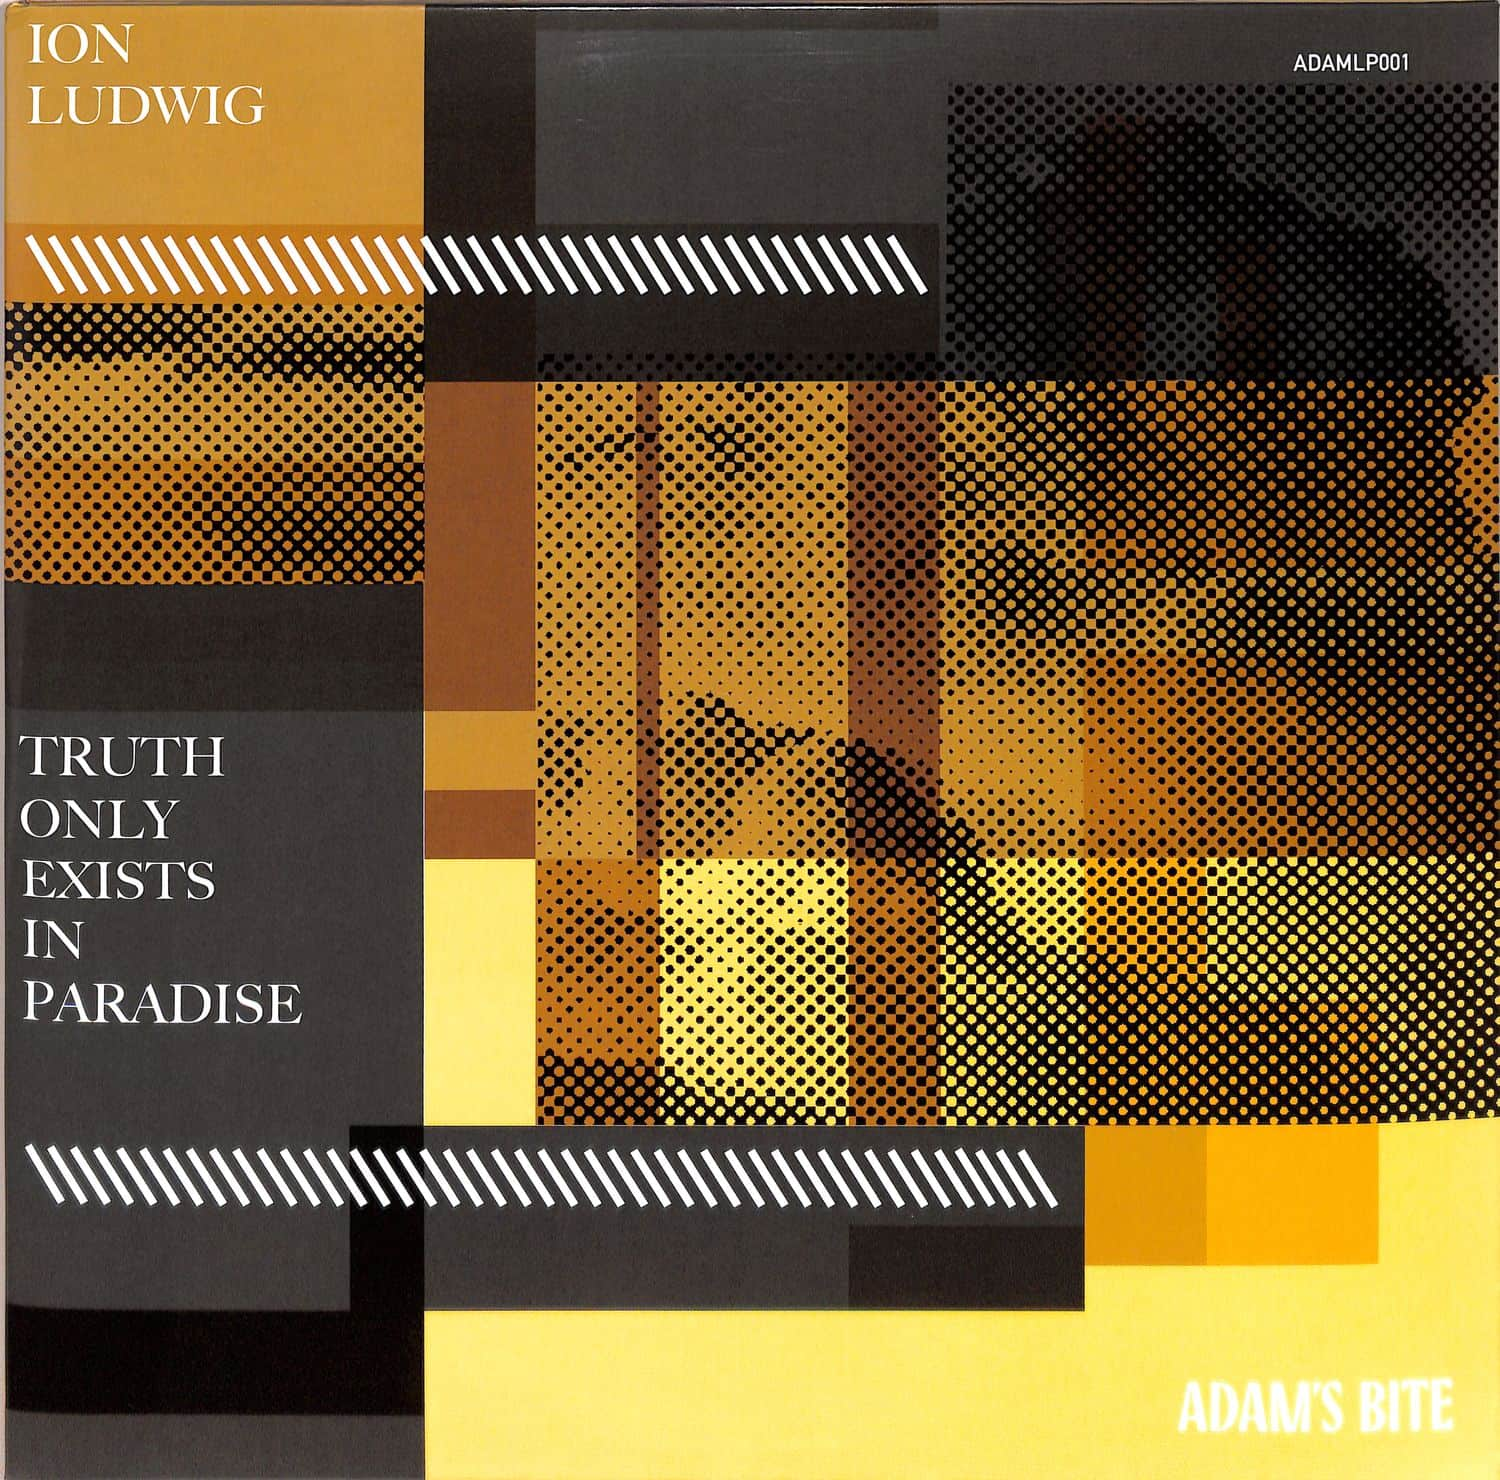 Ion Ludwig - TRUTH ONLY EXISTS IN PARADISE